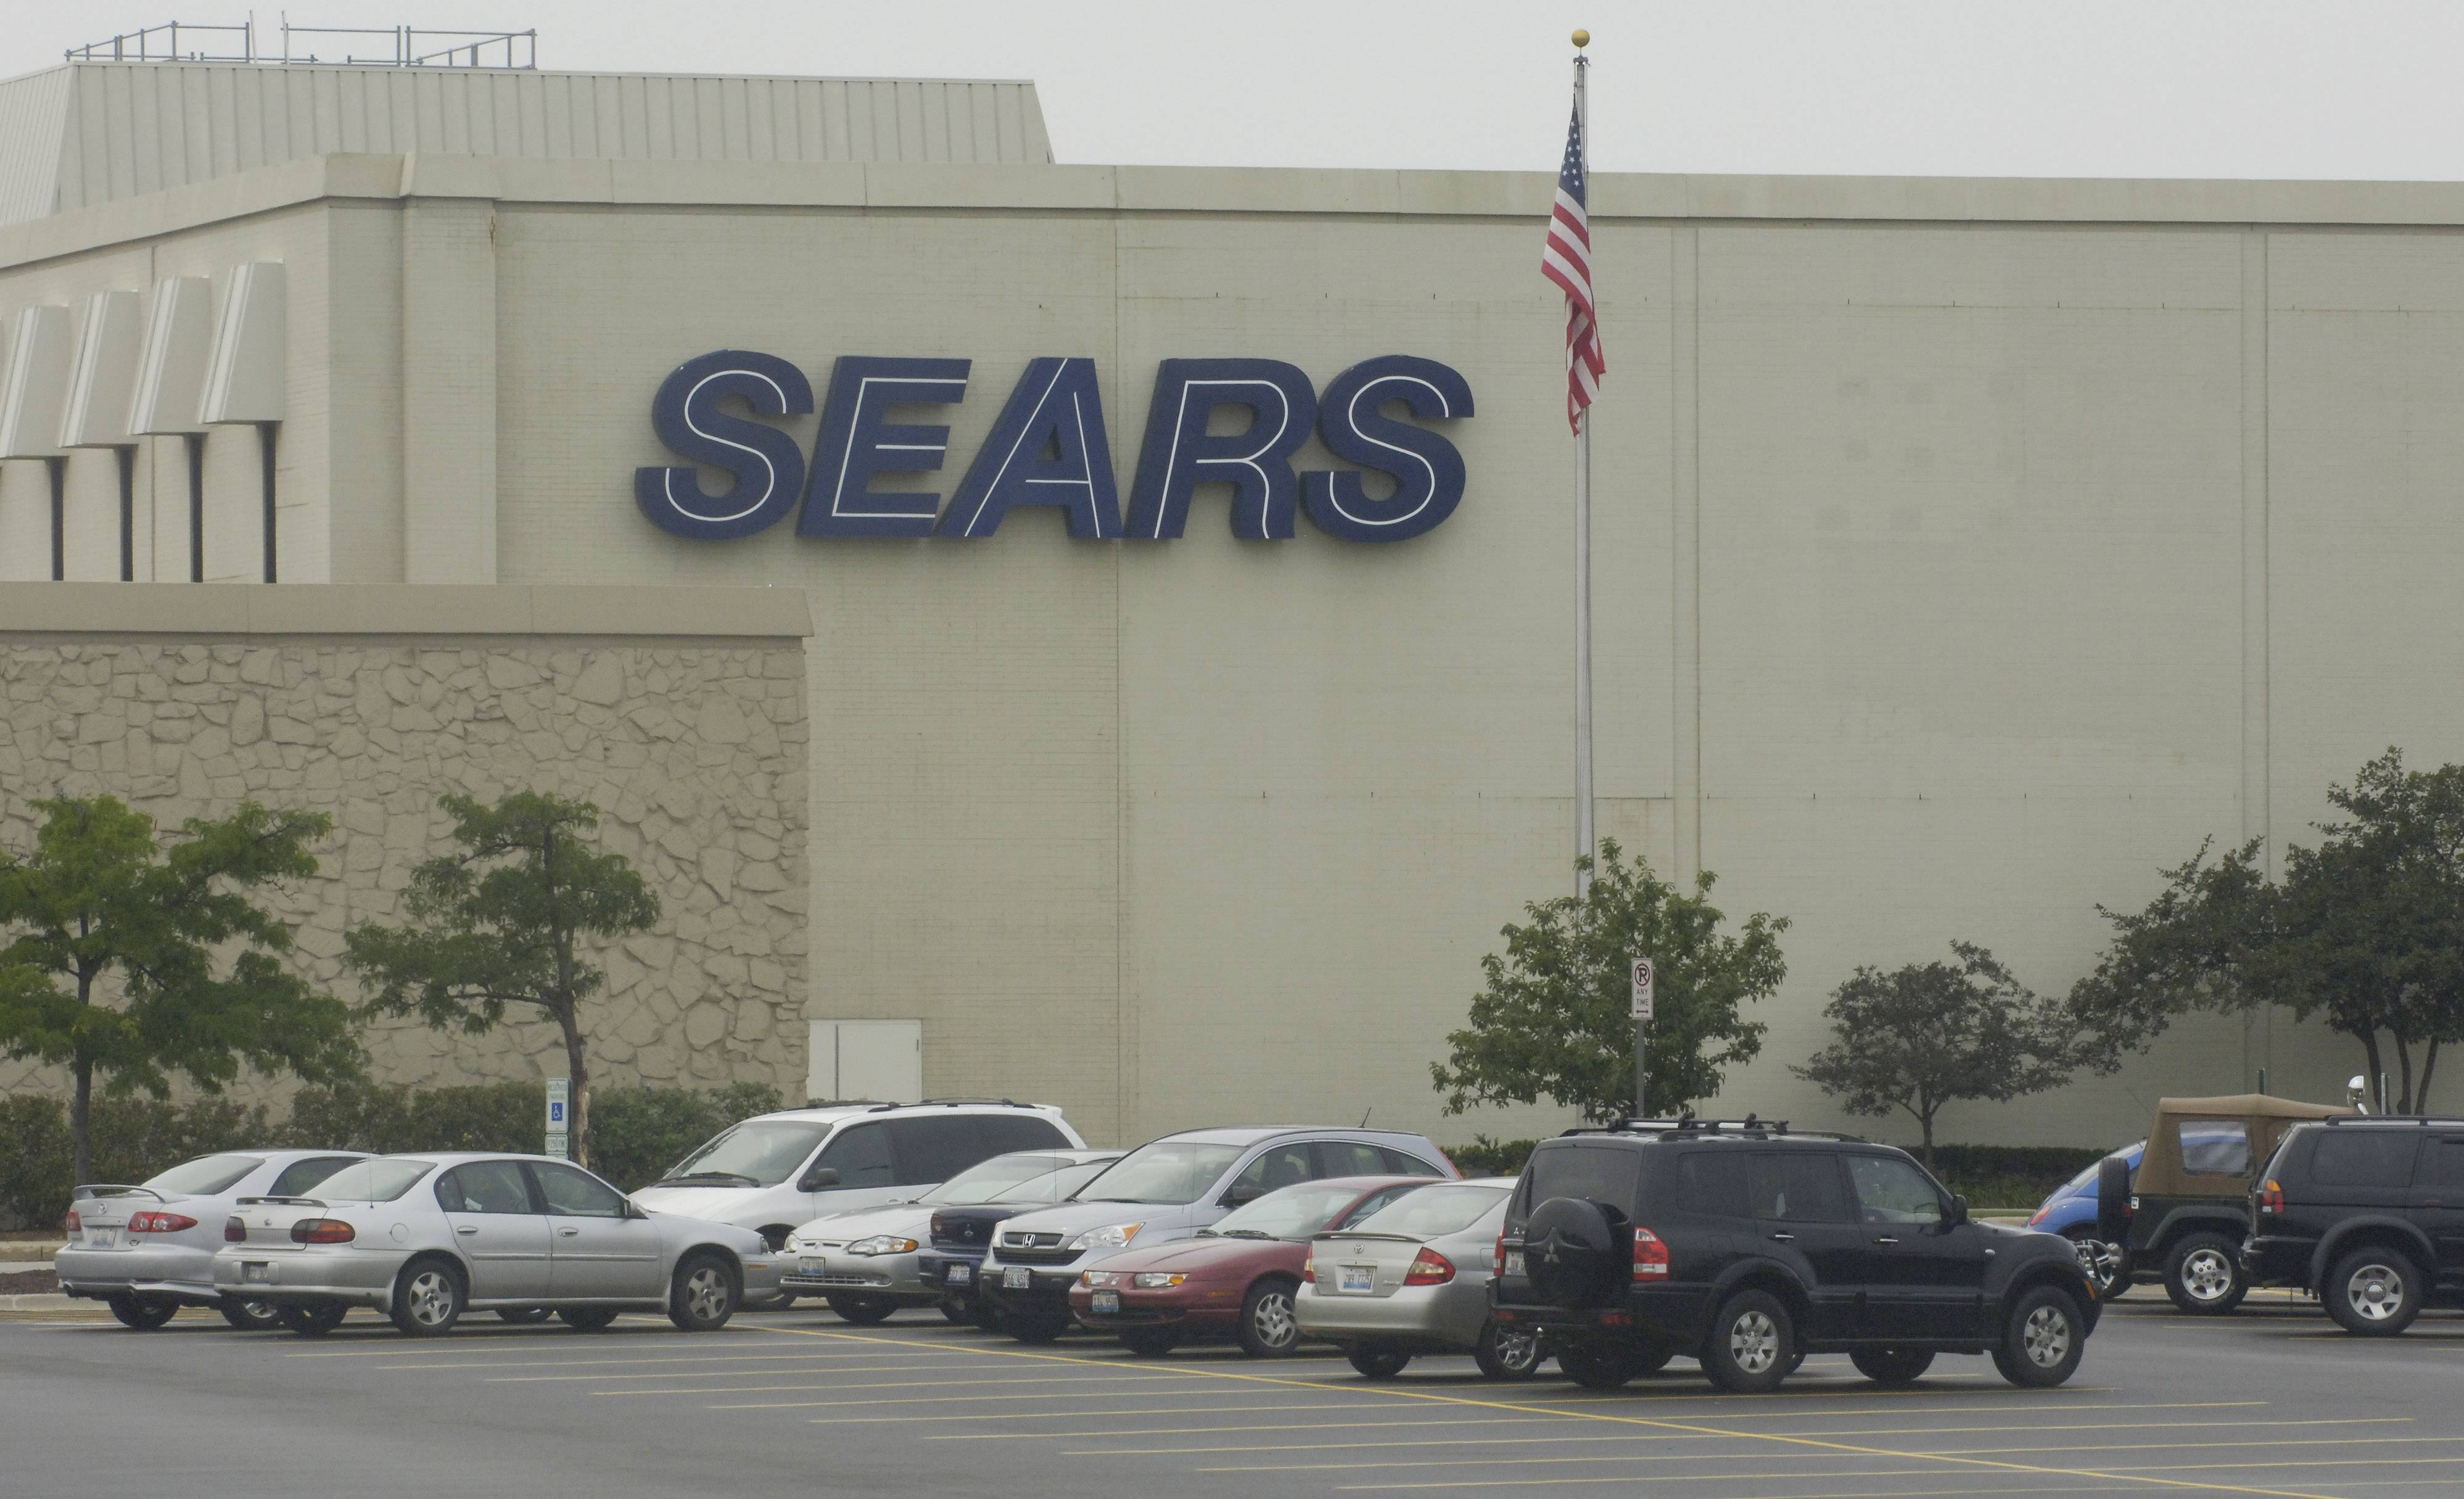 Hoffman Estate Sears and Kmart are introducing an online/in-store collaboration to allow pick up of sears.com or kmart.com orders at any of each other's stores - more than 2,000 locations nationwide - ready in five minutes or less.